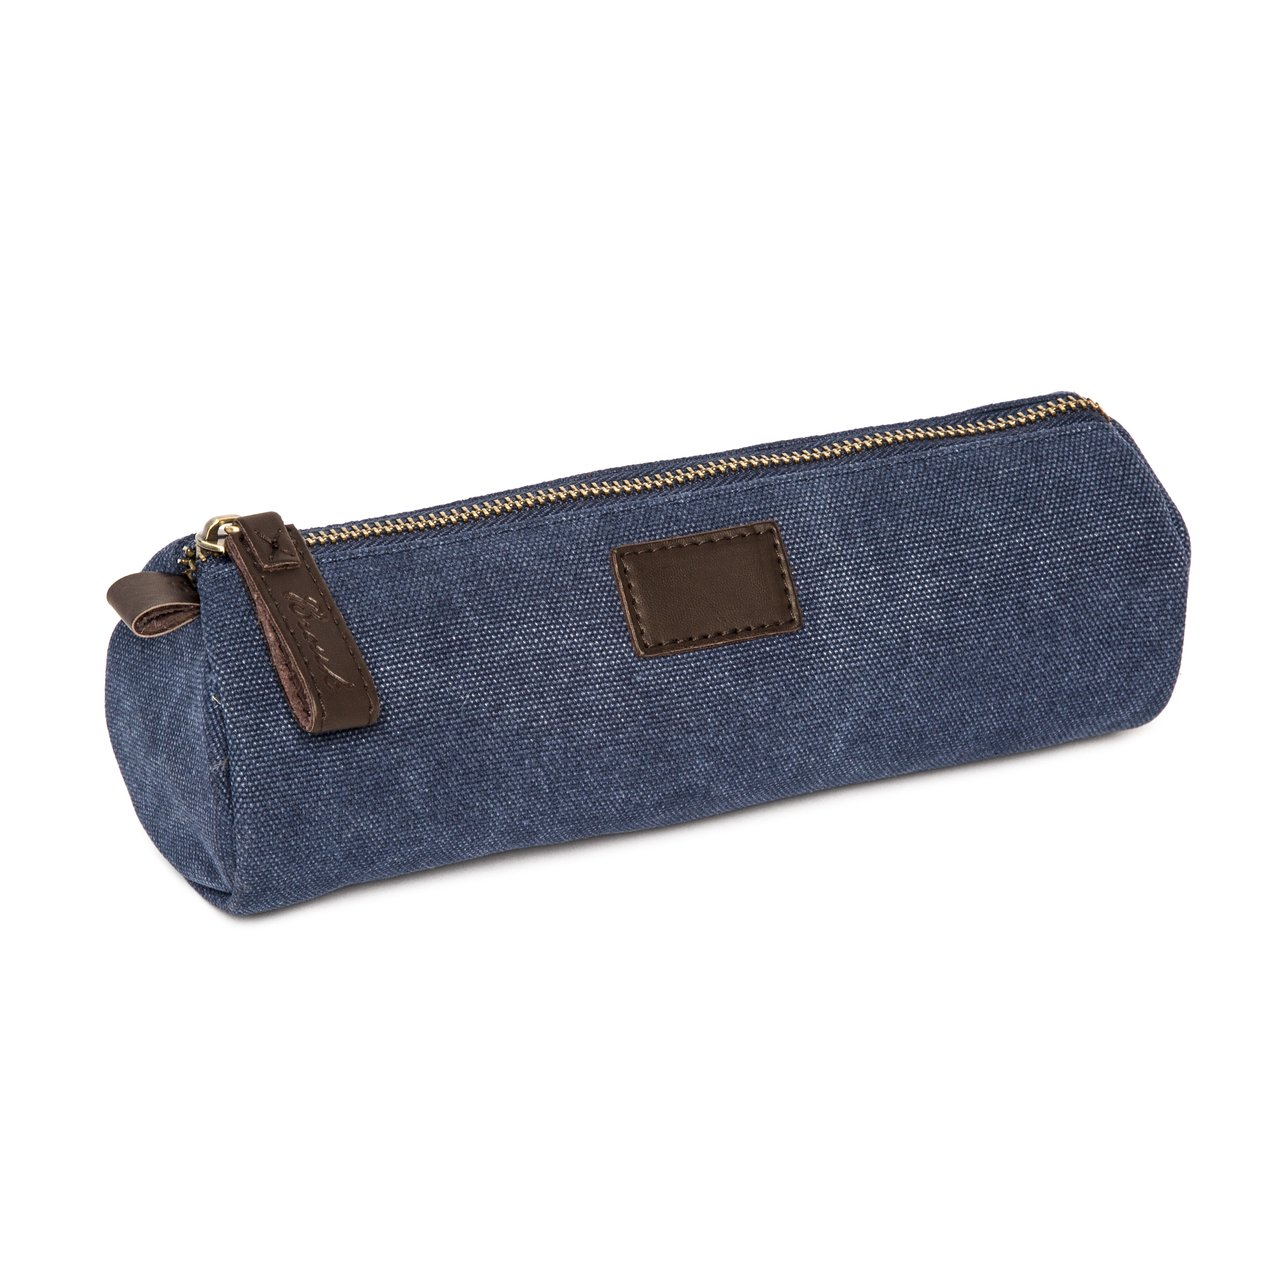 Excursion Pouch in Denim